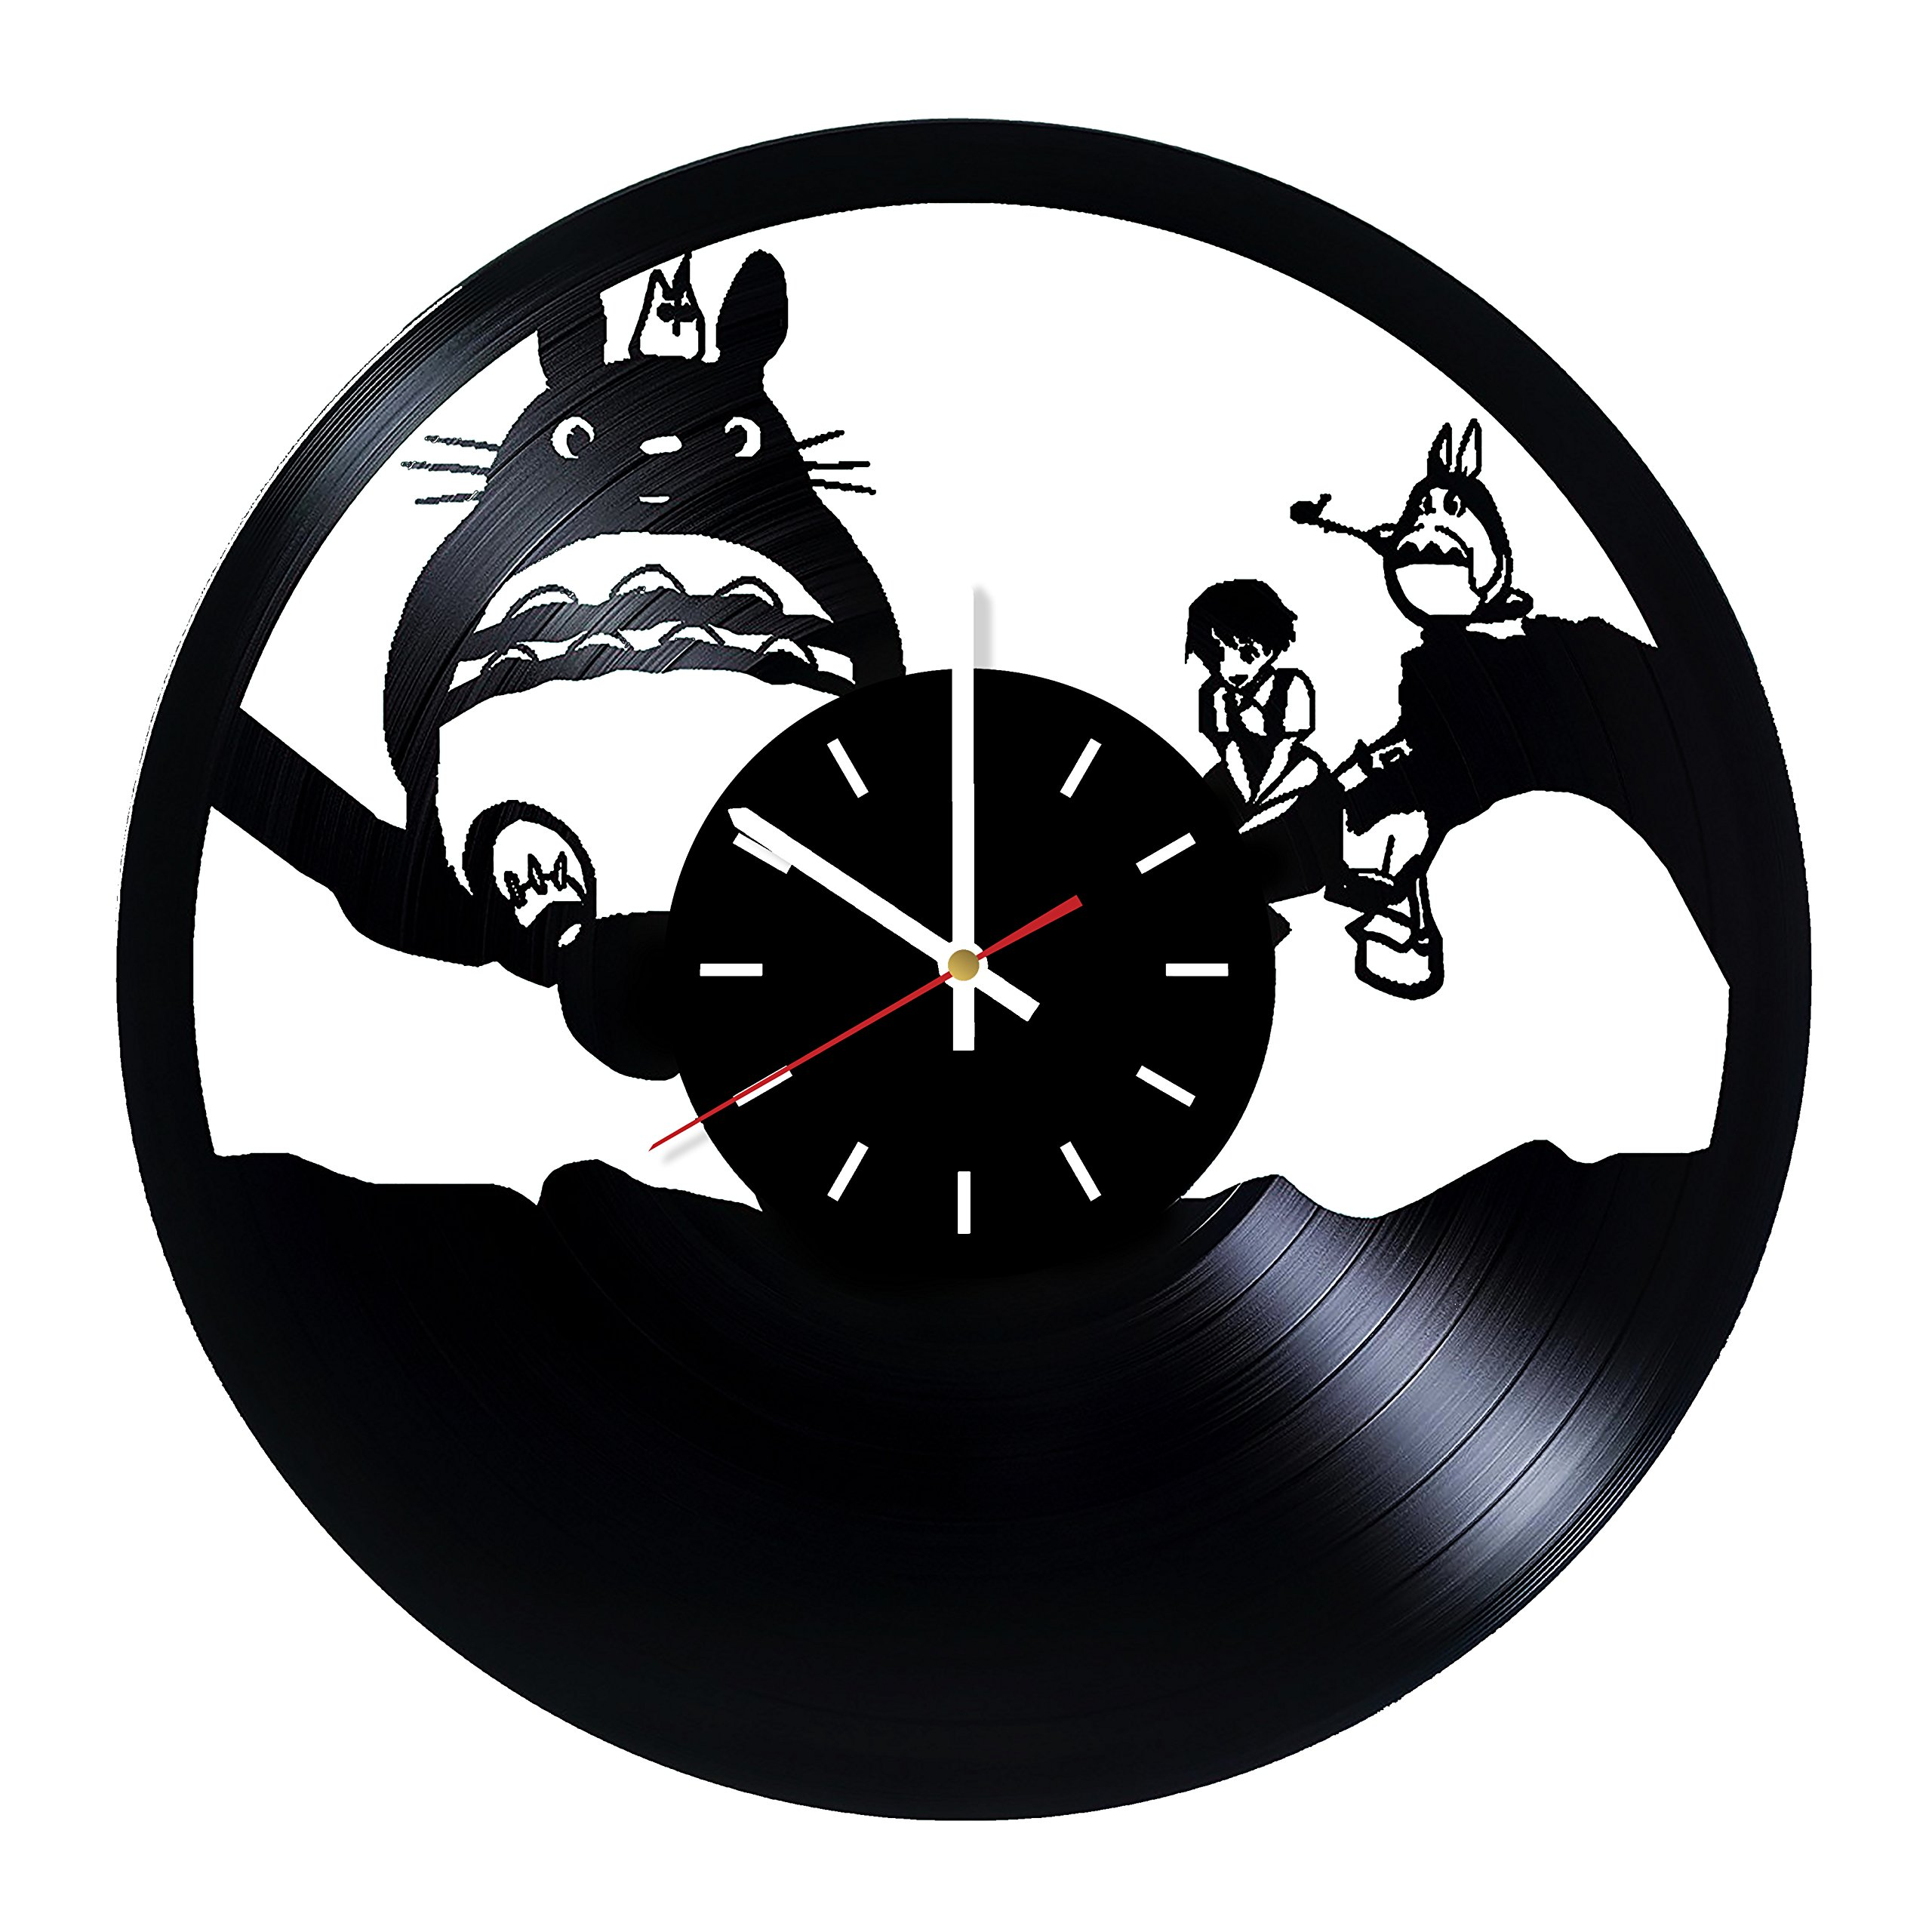 Everyday Arts My Neighbor Totoro Hayao Miyazaki Design Vinyl Record Wall Clock - Get Unique Bedroom or Garage Wall Decor - Gift Ideas for Friends, Brother - Darth Vader Unique Modern Art